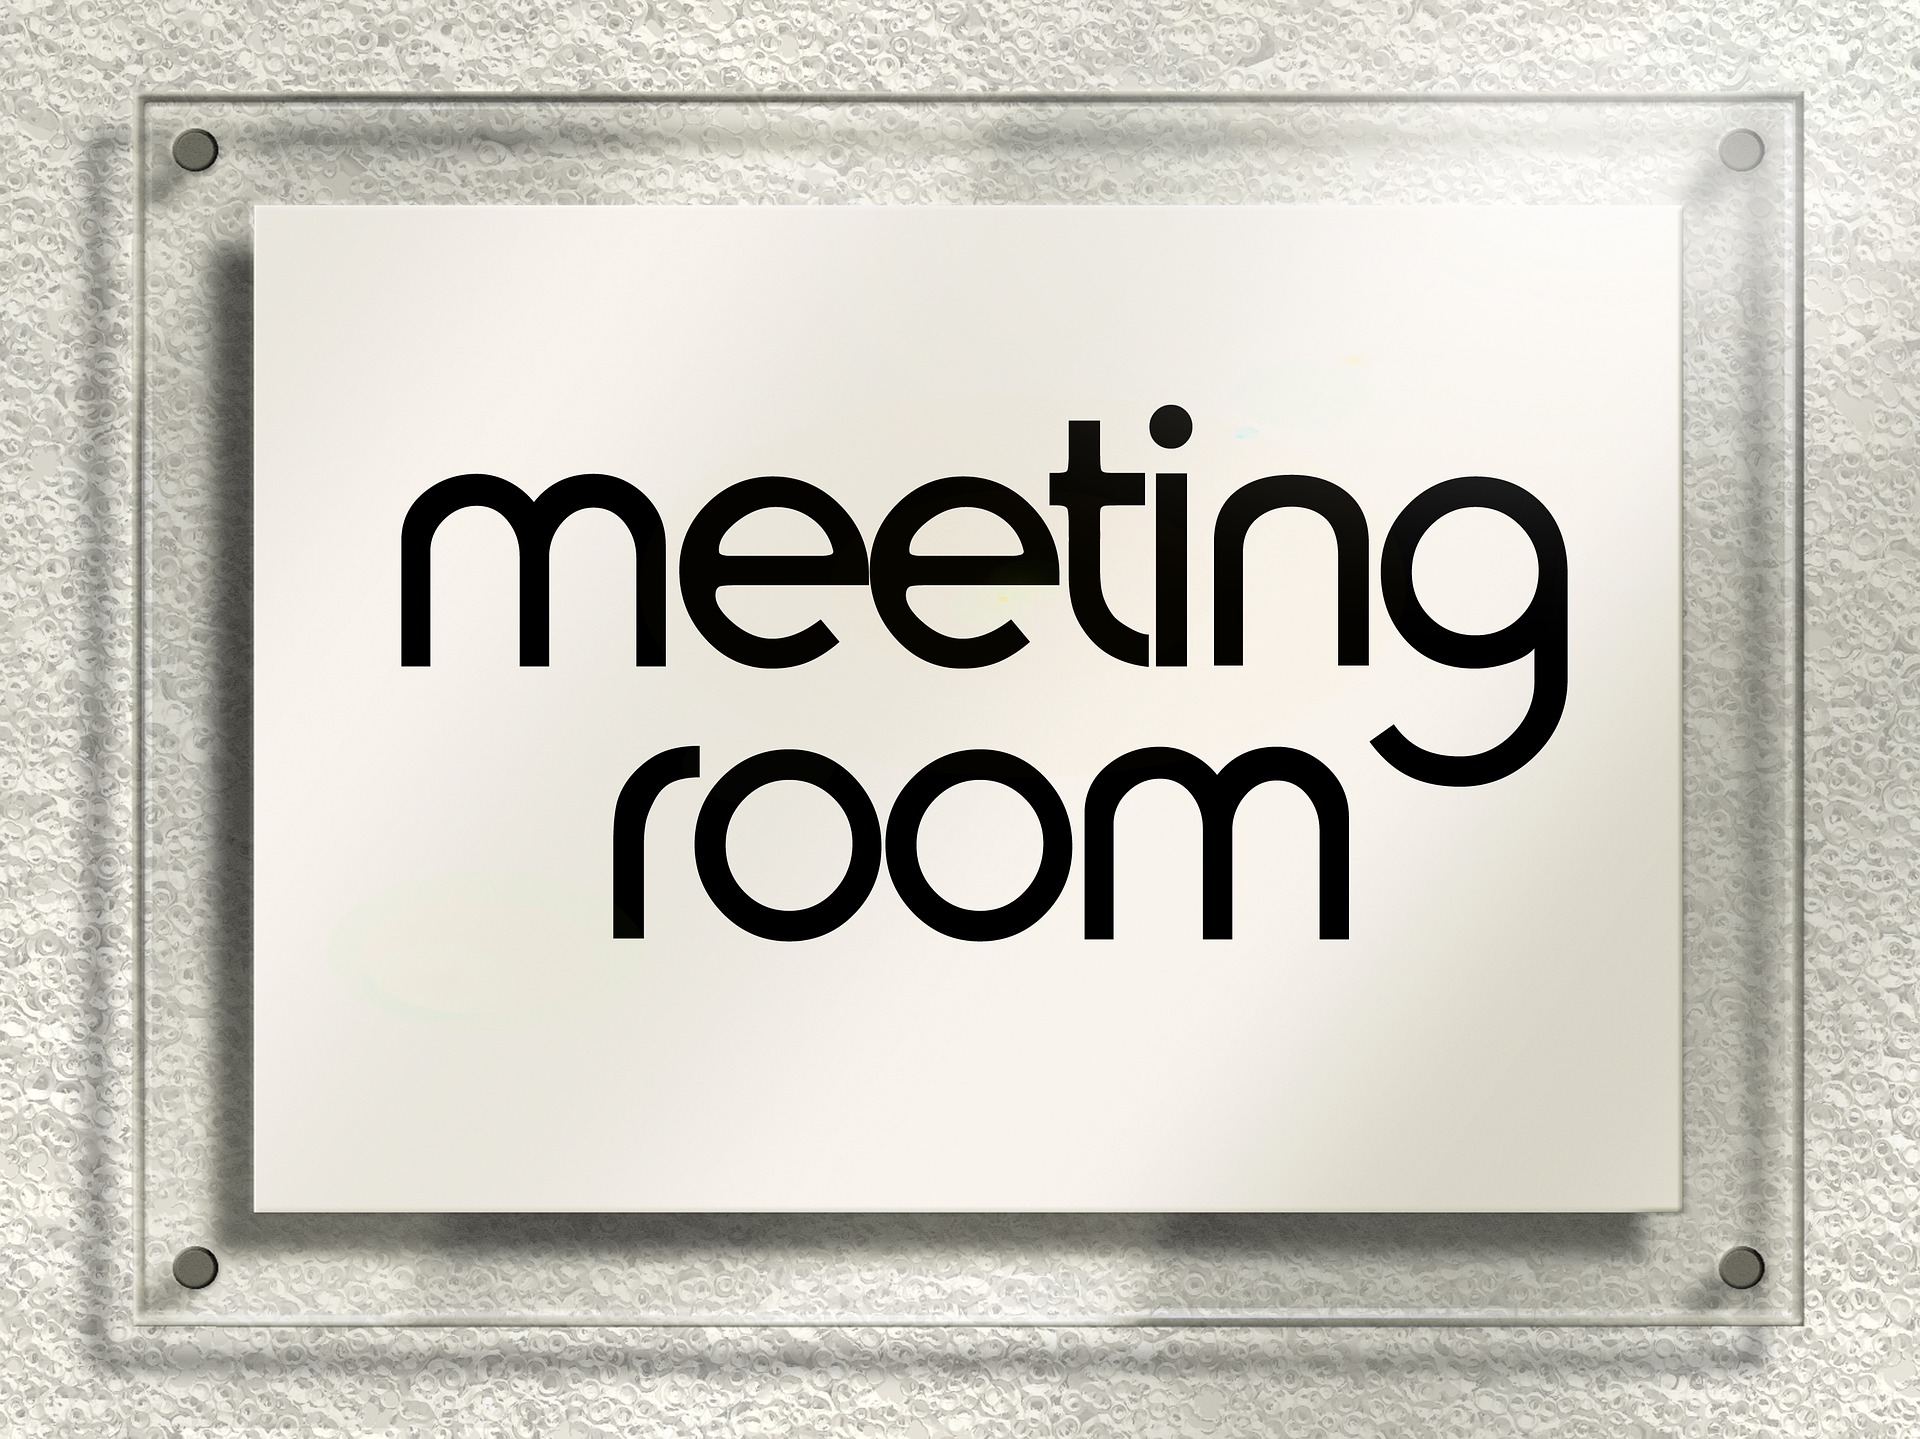 PPI board meeting Wednesday, August 25th